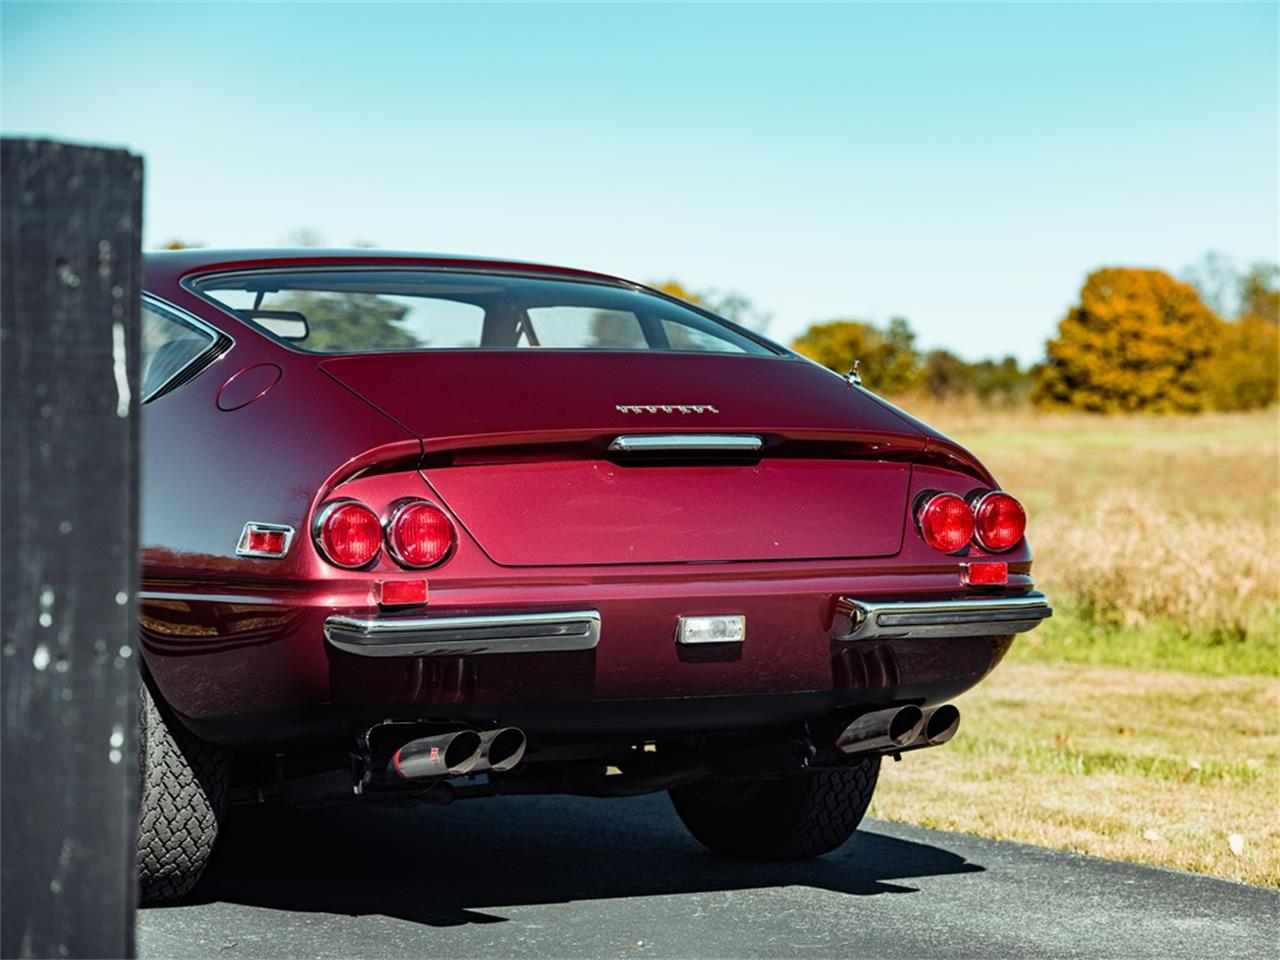 Large Picture of 1972 365 GTB/4 Daytona Berlinetta Auction Vehicle - OW0C